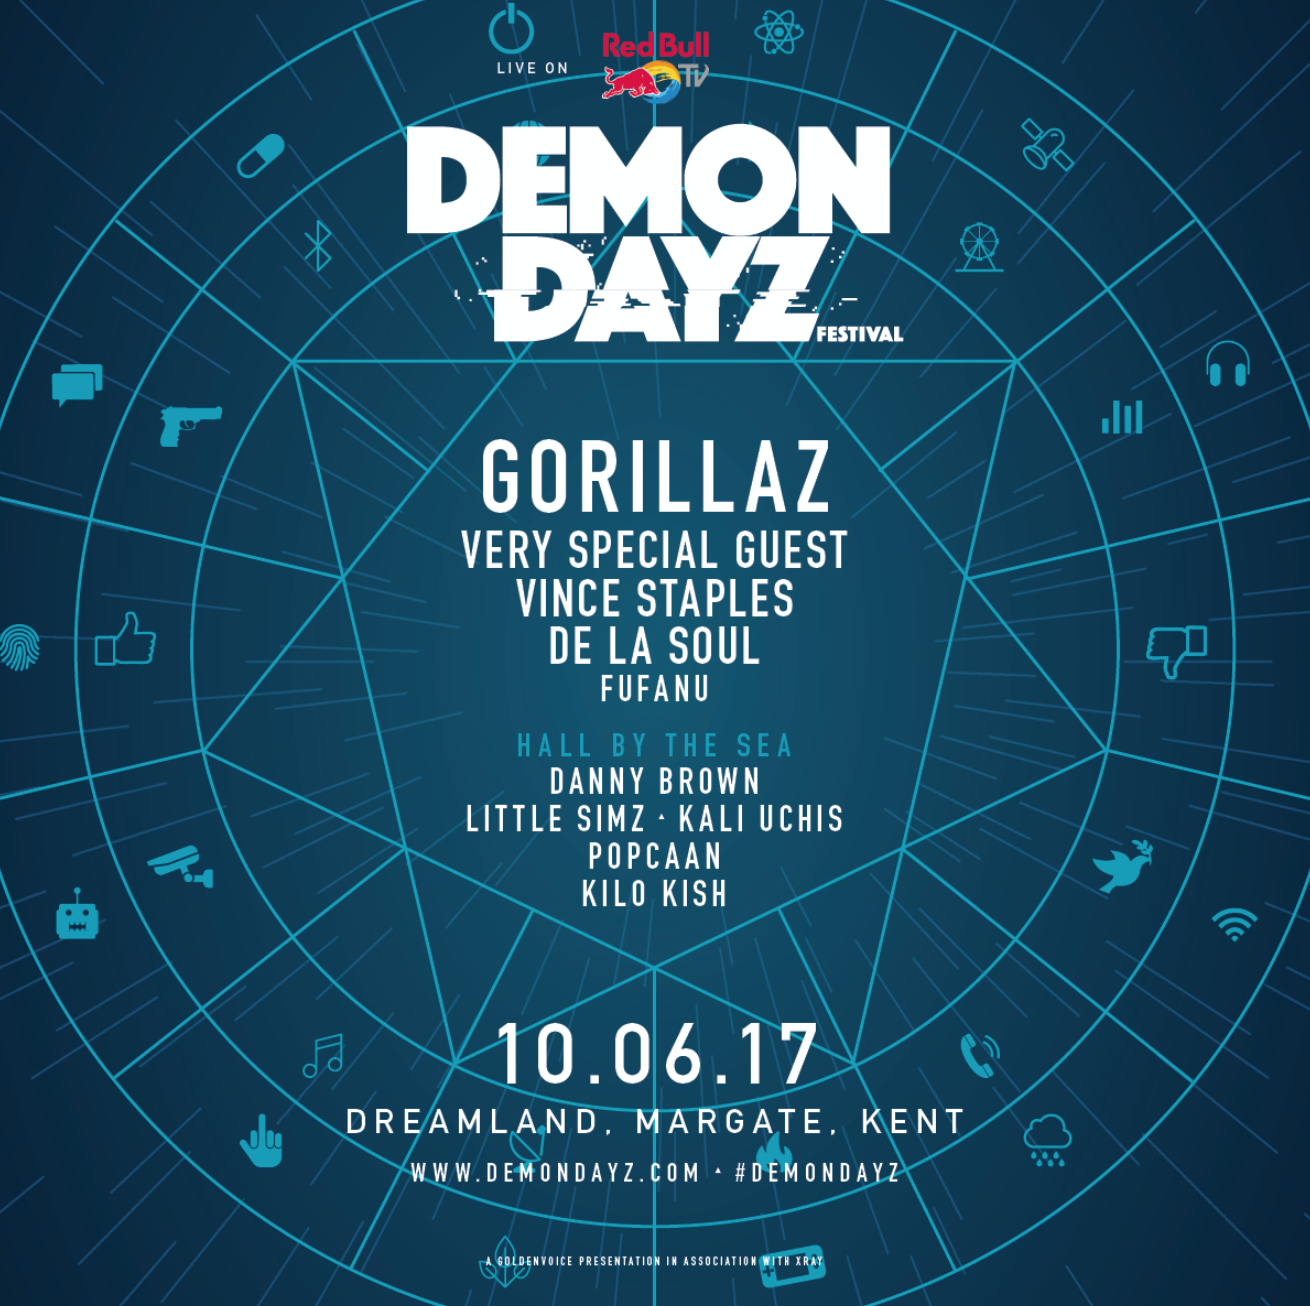 DEMON DAYZ FESTIVAL – LINE-UP ANNOUNCED